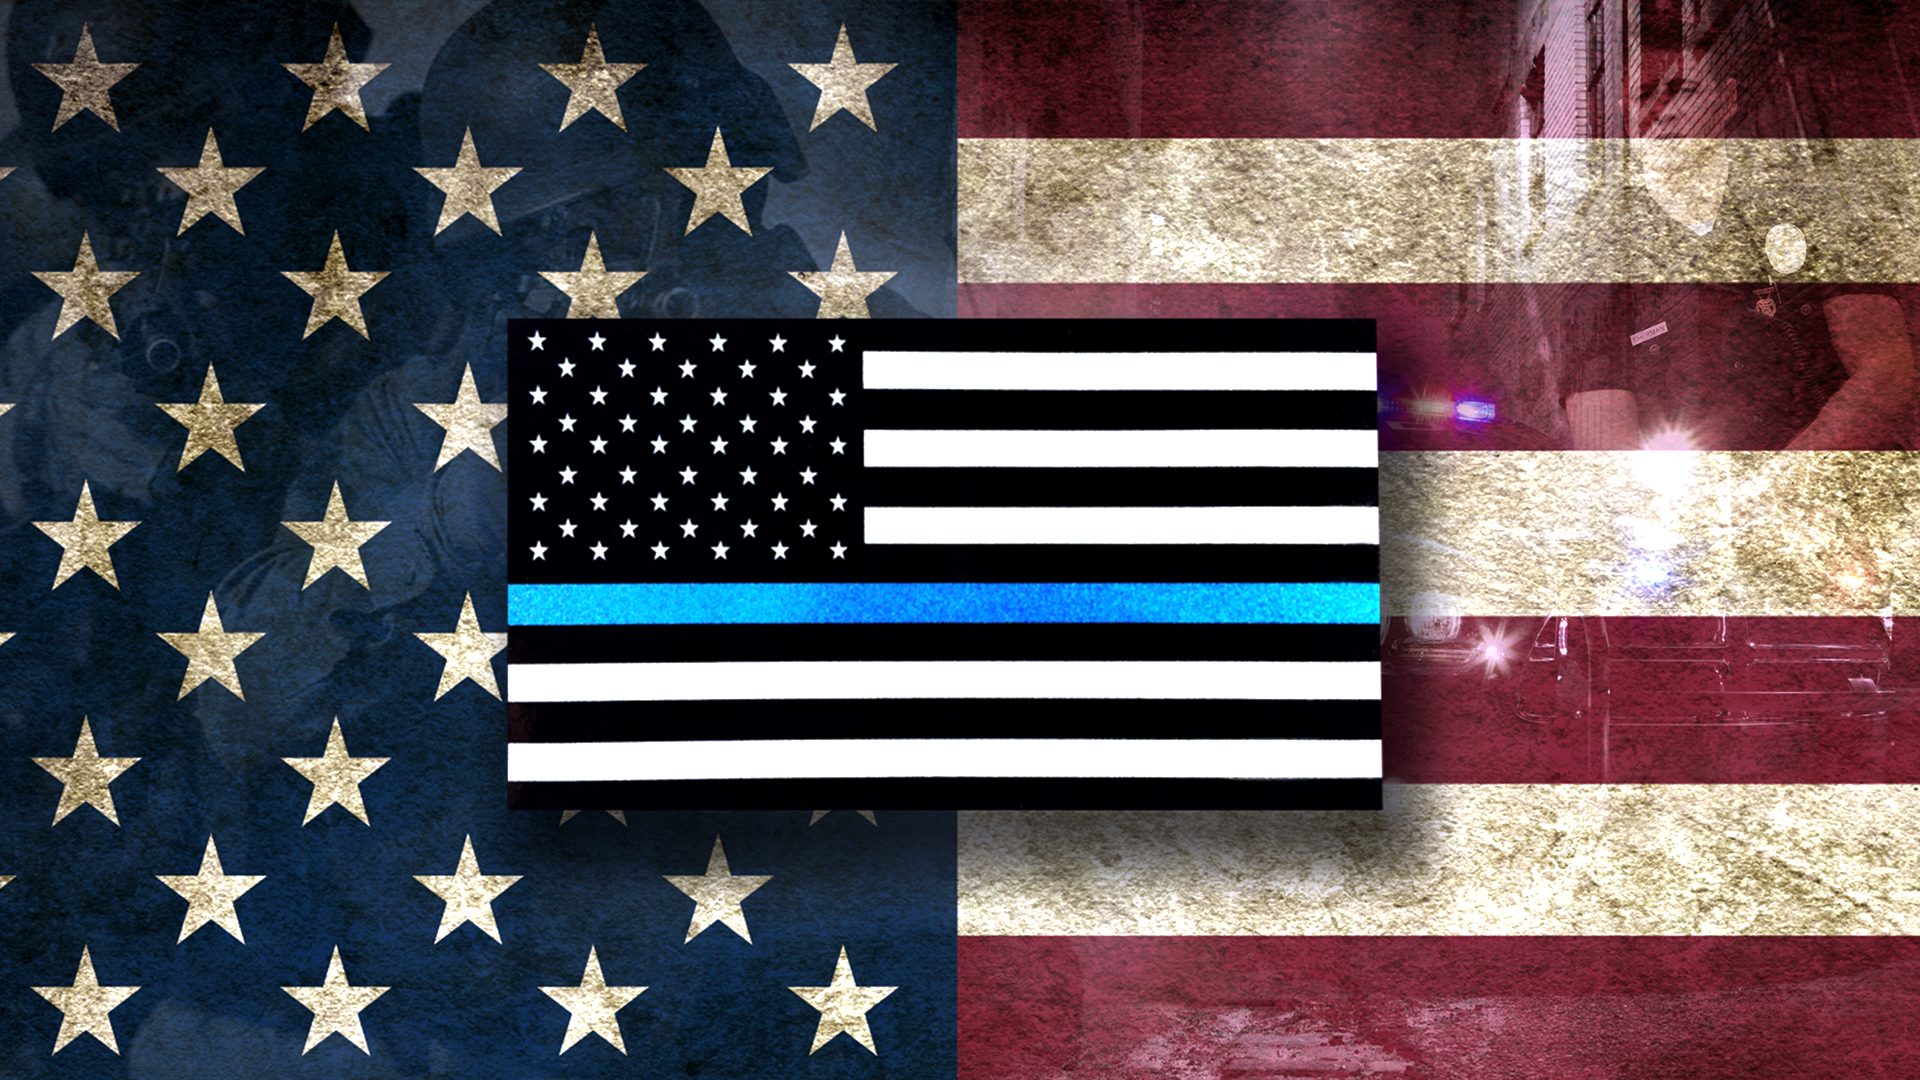 police wallpaperbanner 1920x1080 by jordanlang2 on